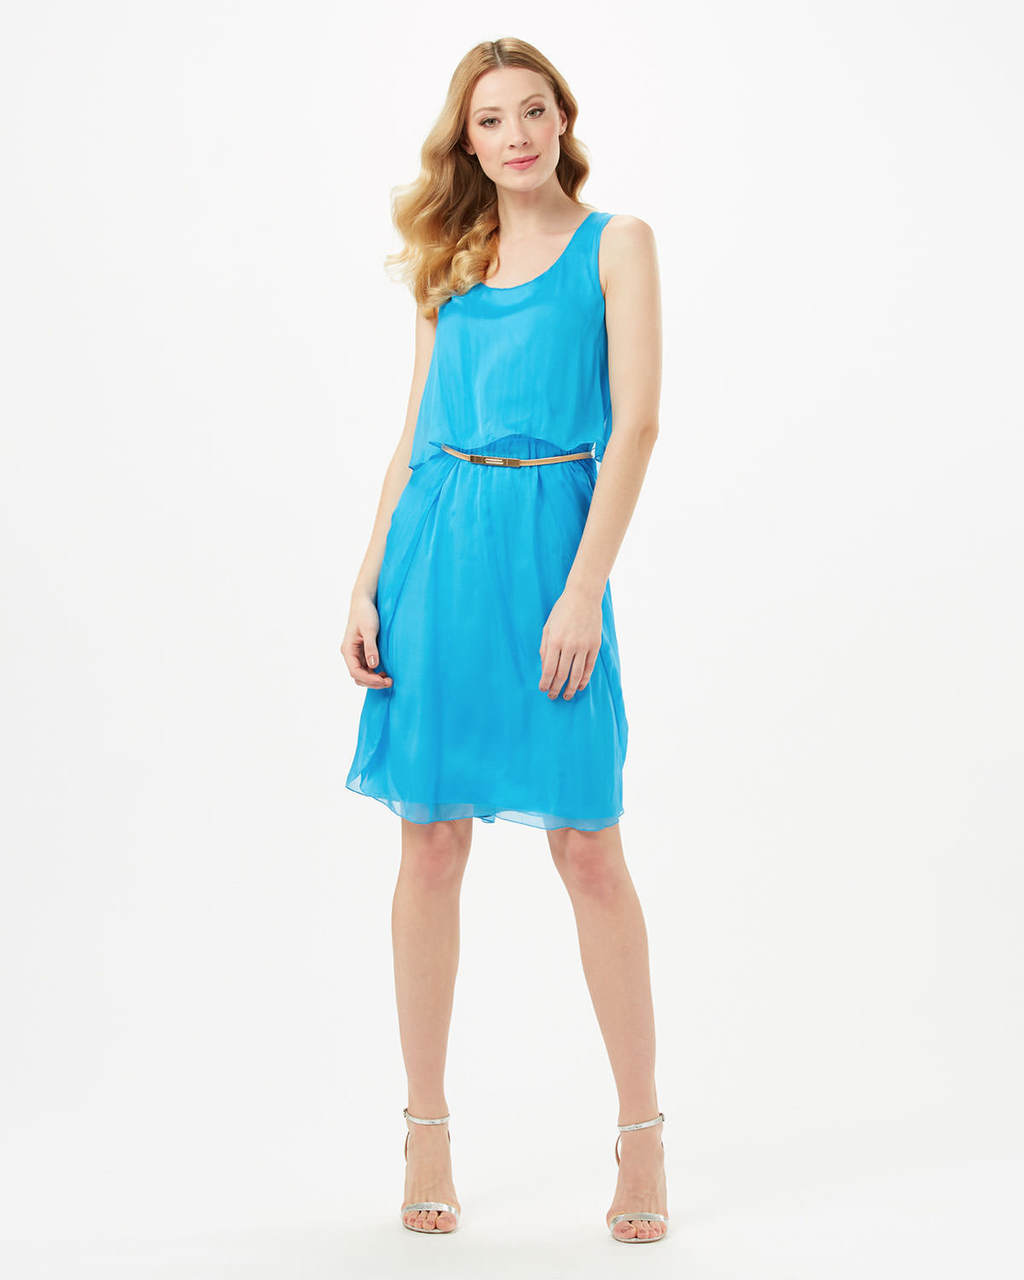 Selina Silk Dress - style: shift; pattern: plain; sleeve style: sleeveless; waist detail: belted waist/tie at waist/drawstring; predominant colour: turquoise; occasions: evening; length: on the knee; fit: body skimming; fibres: silk - 100%; neckline: crew; sleeve length: sleeveless; texture group: silky - light; pattern type: fabric; season: s/s 2016; wardrobe: event